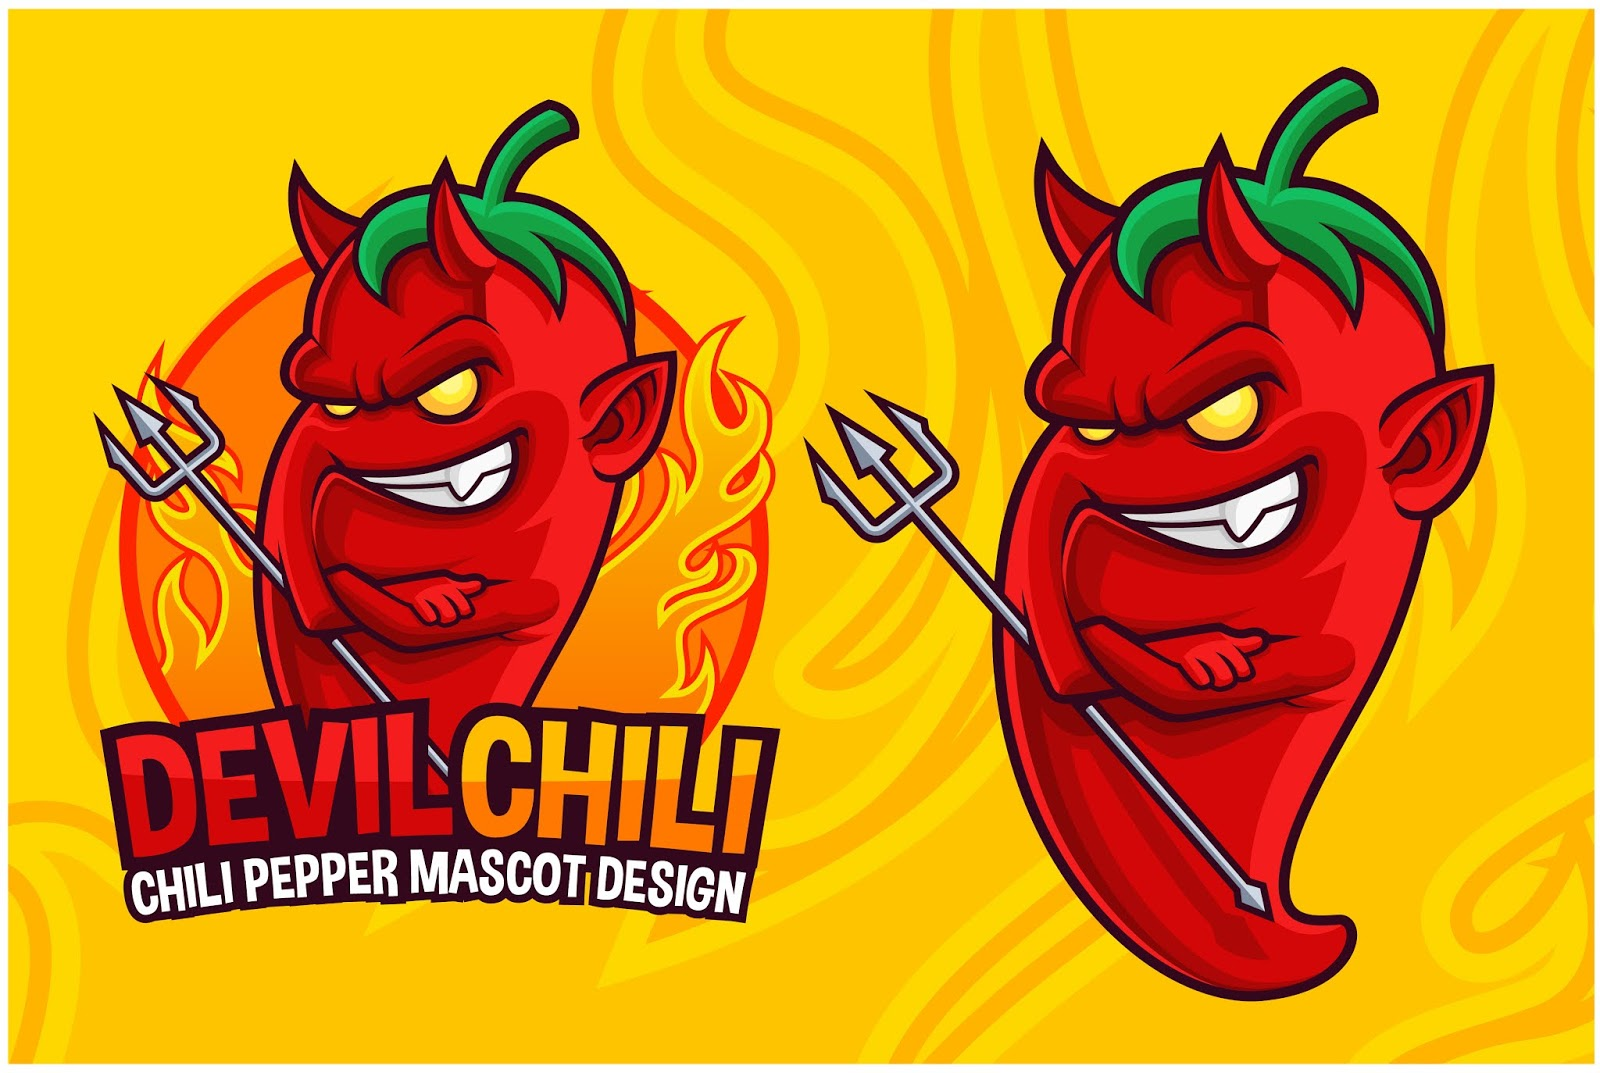 Devil Chili Pepper Mascot Free Download Vector CDR, AI, EPS and PNG Formats